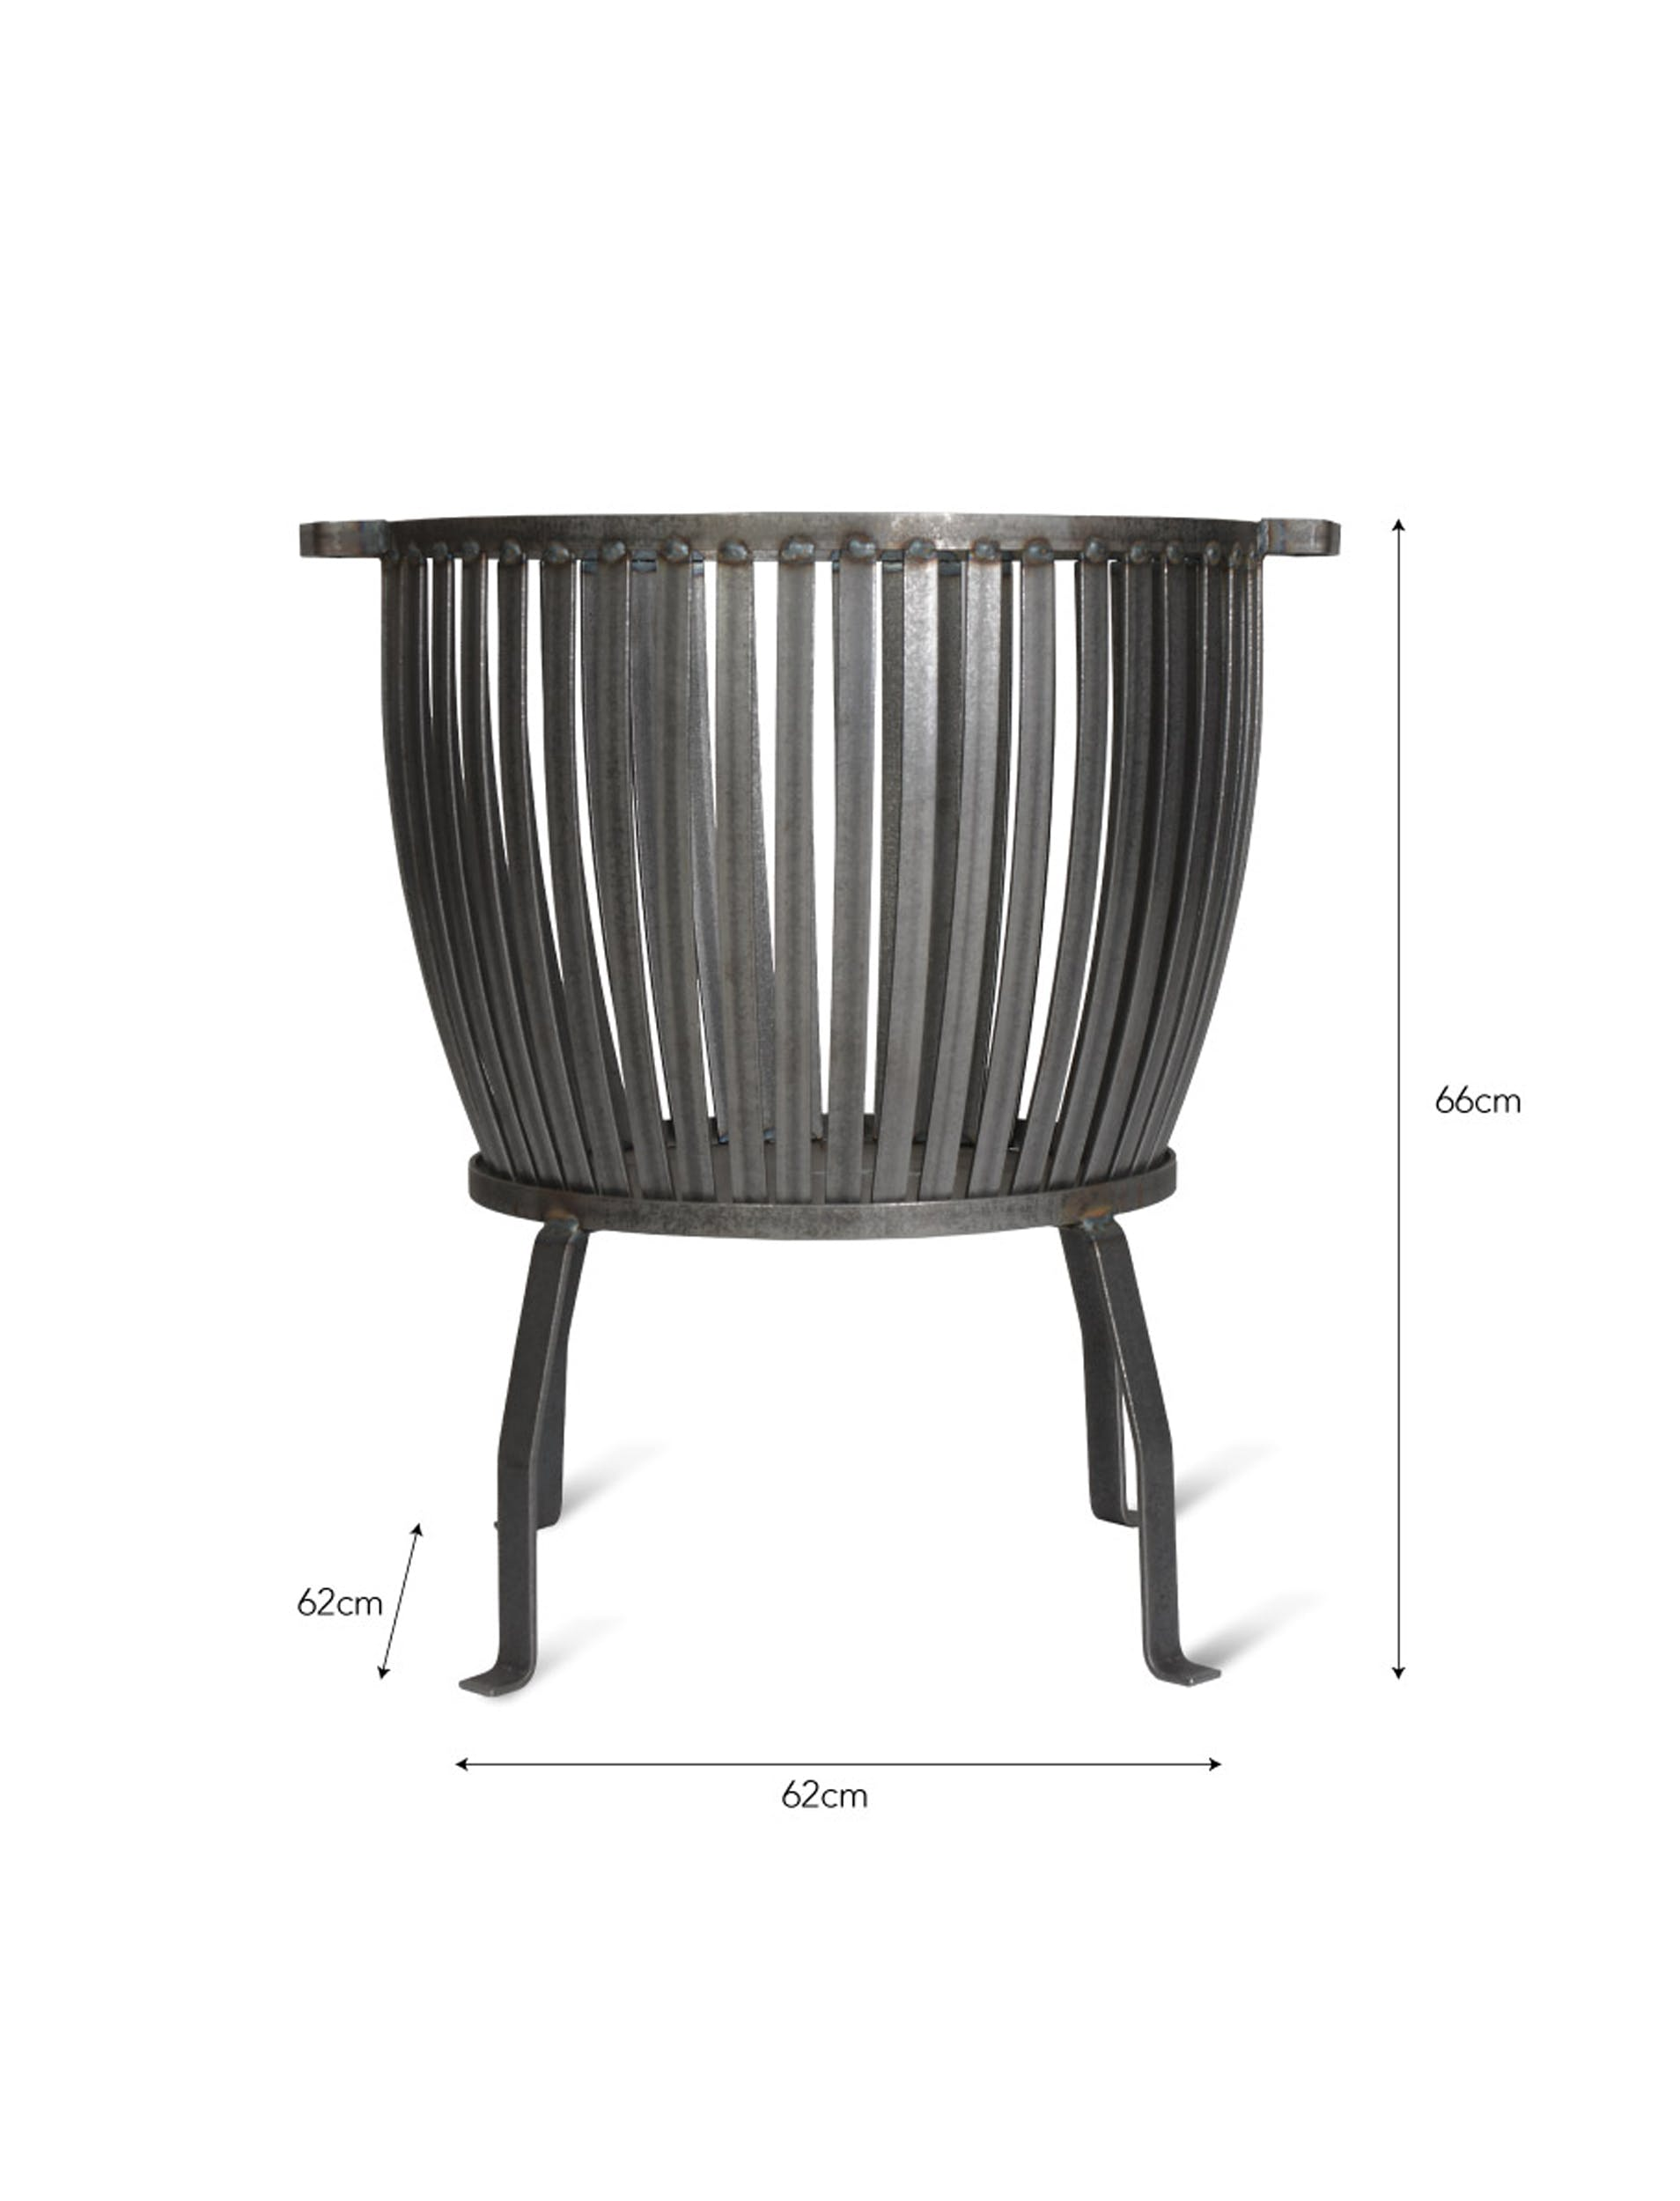 Raw Metal Barrington Fire Pit in Small or Large  | Garden Trading